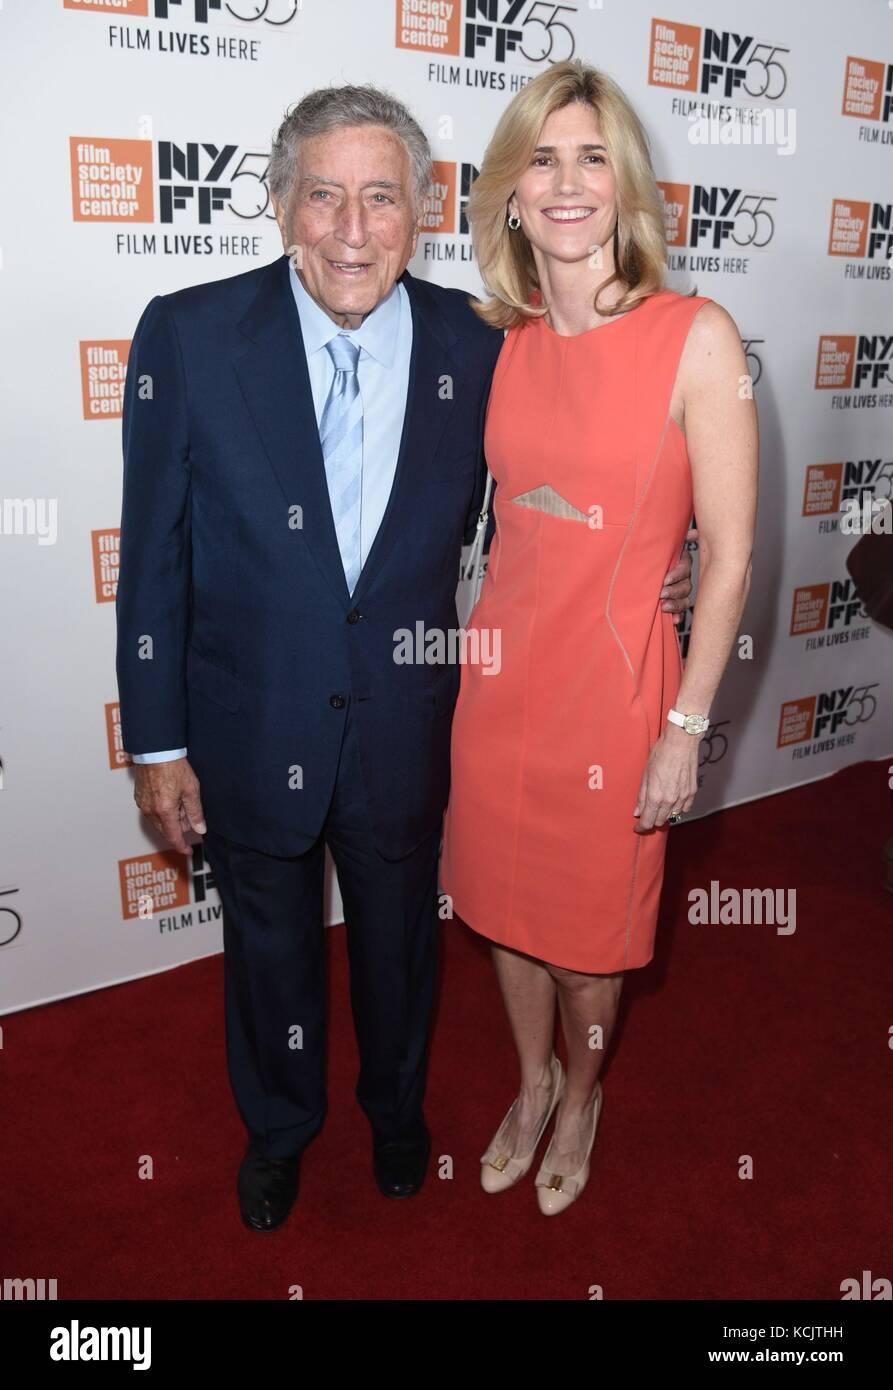 New York, NY, USA. 5th Oct, 2017. Tony Bennett, Susan Crow at arrivals for SPIELBERG Premiere at the 55th Annual - Stock Image